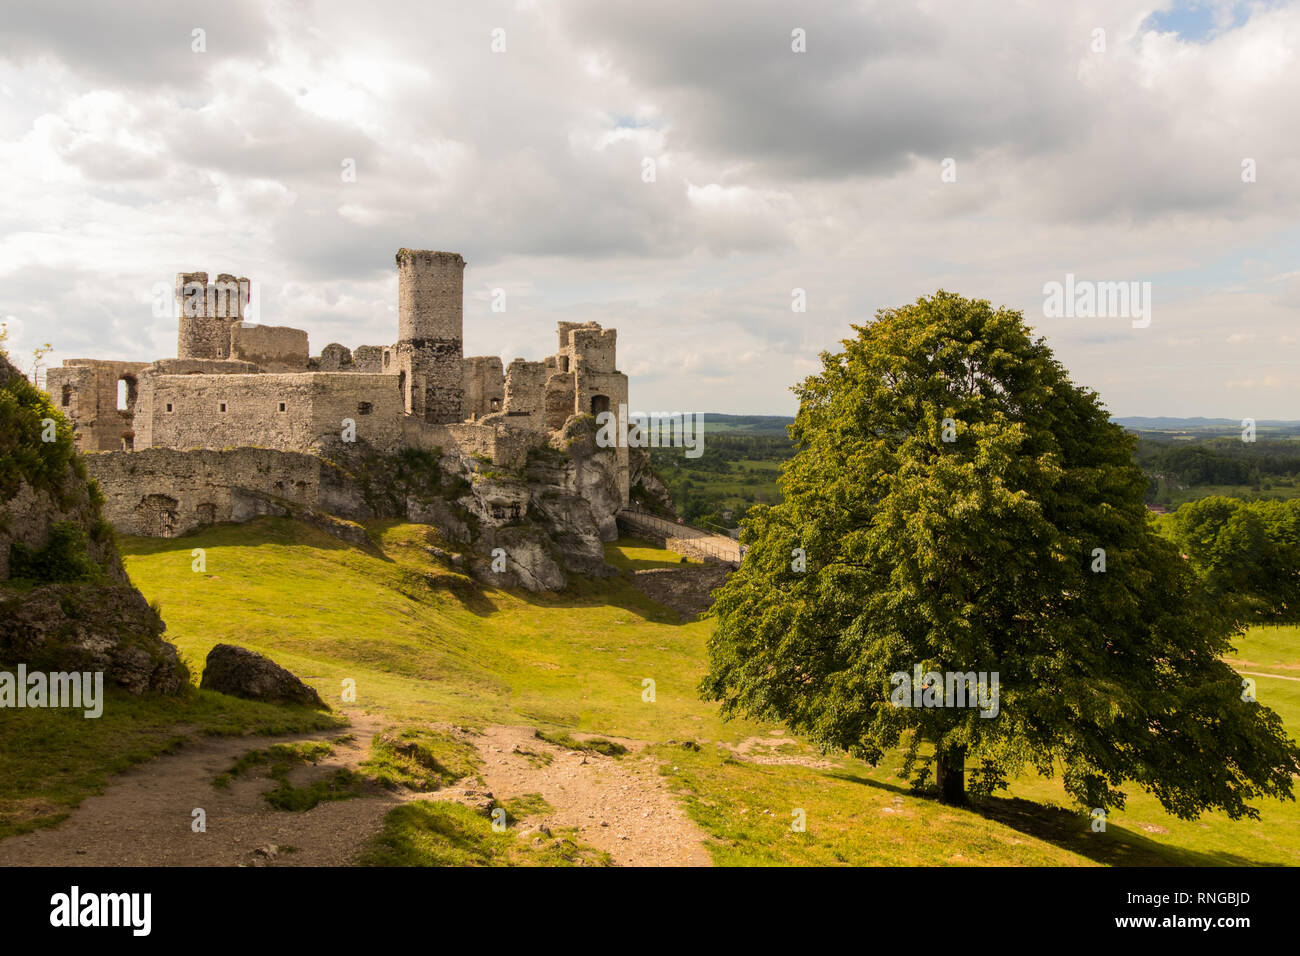 Ruins of medieval castle Ogrodzieniec, Poland - Stock Image